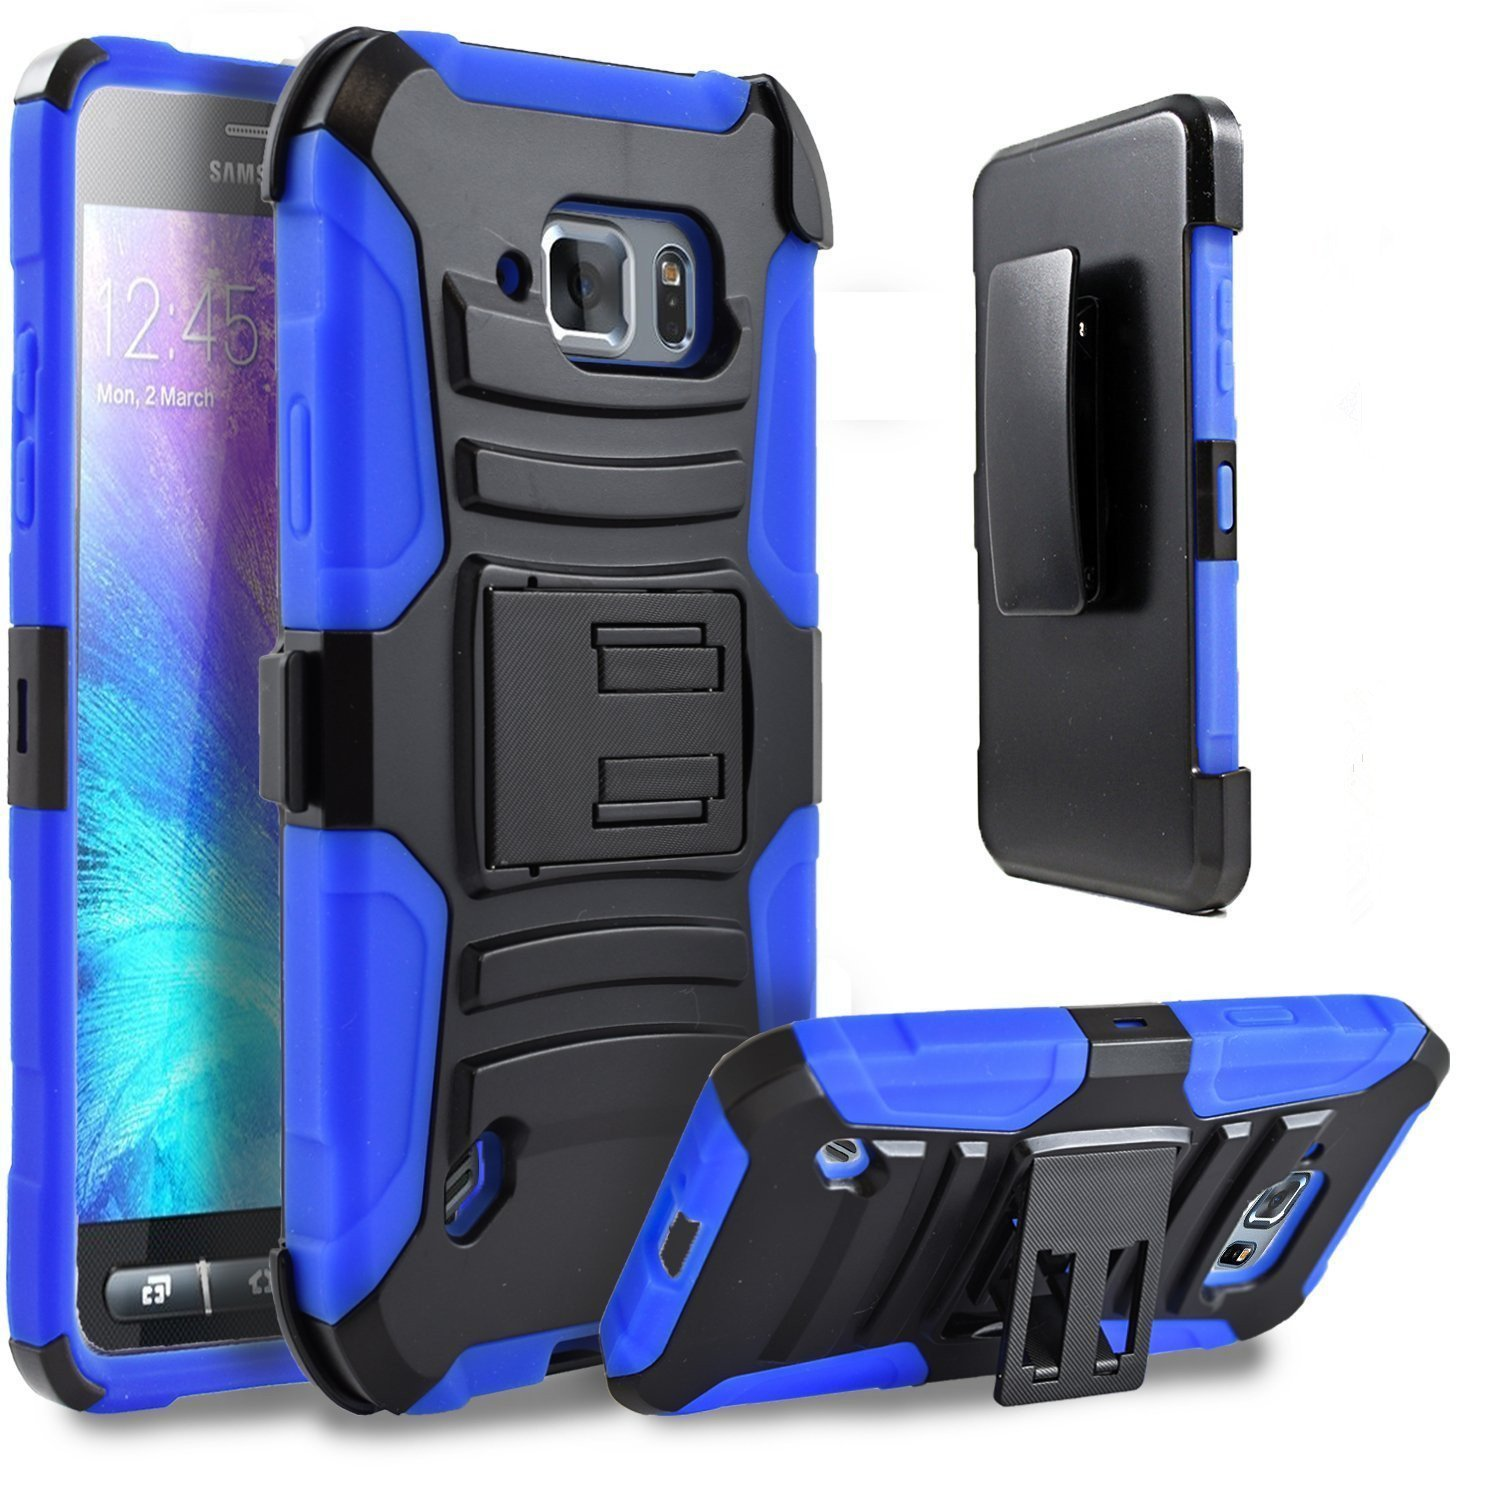 Premium Hard /& Soft Sturdy Durable Shockproof Rugged Shell Hybrid Protective Samsung Galaxy S7 Edge Phone Case, Storm Buy Holster Blue Anti Scratch Phone Case Cover with Built in Kickstand